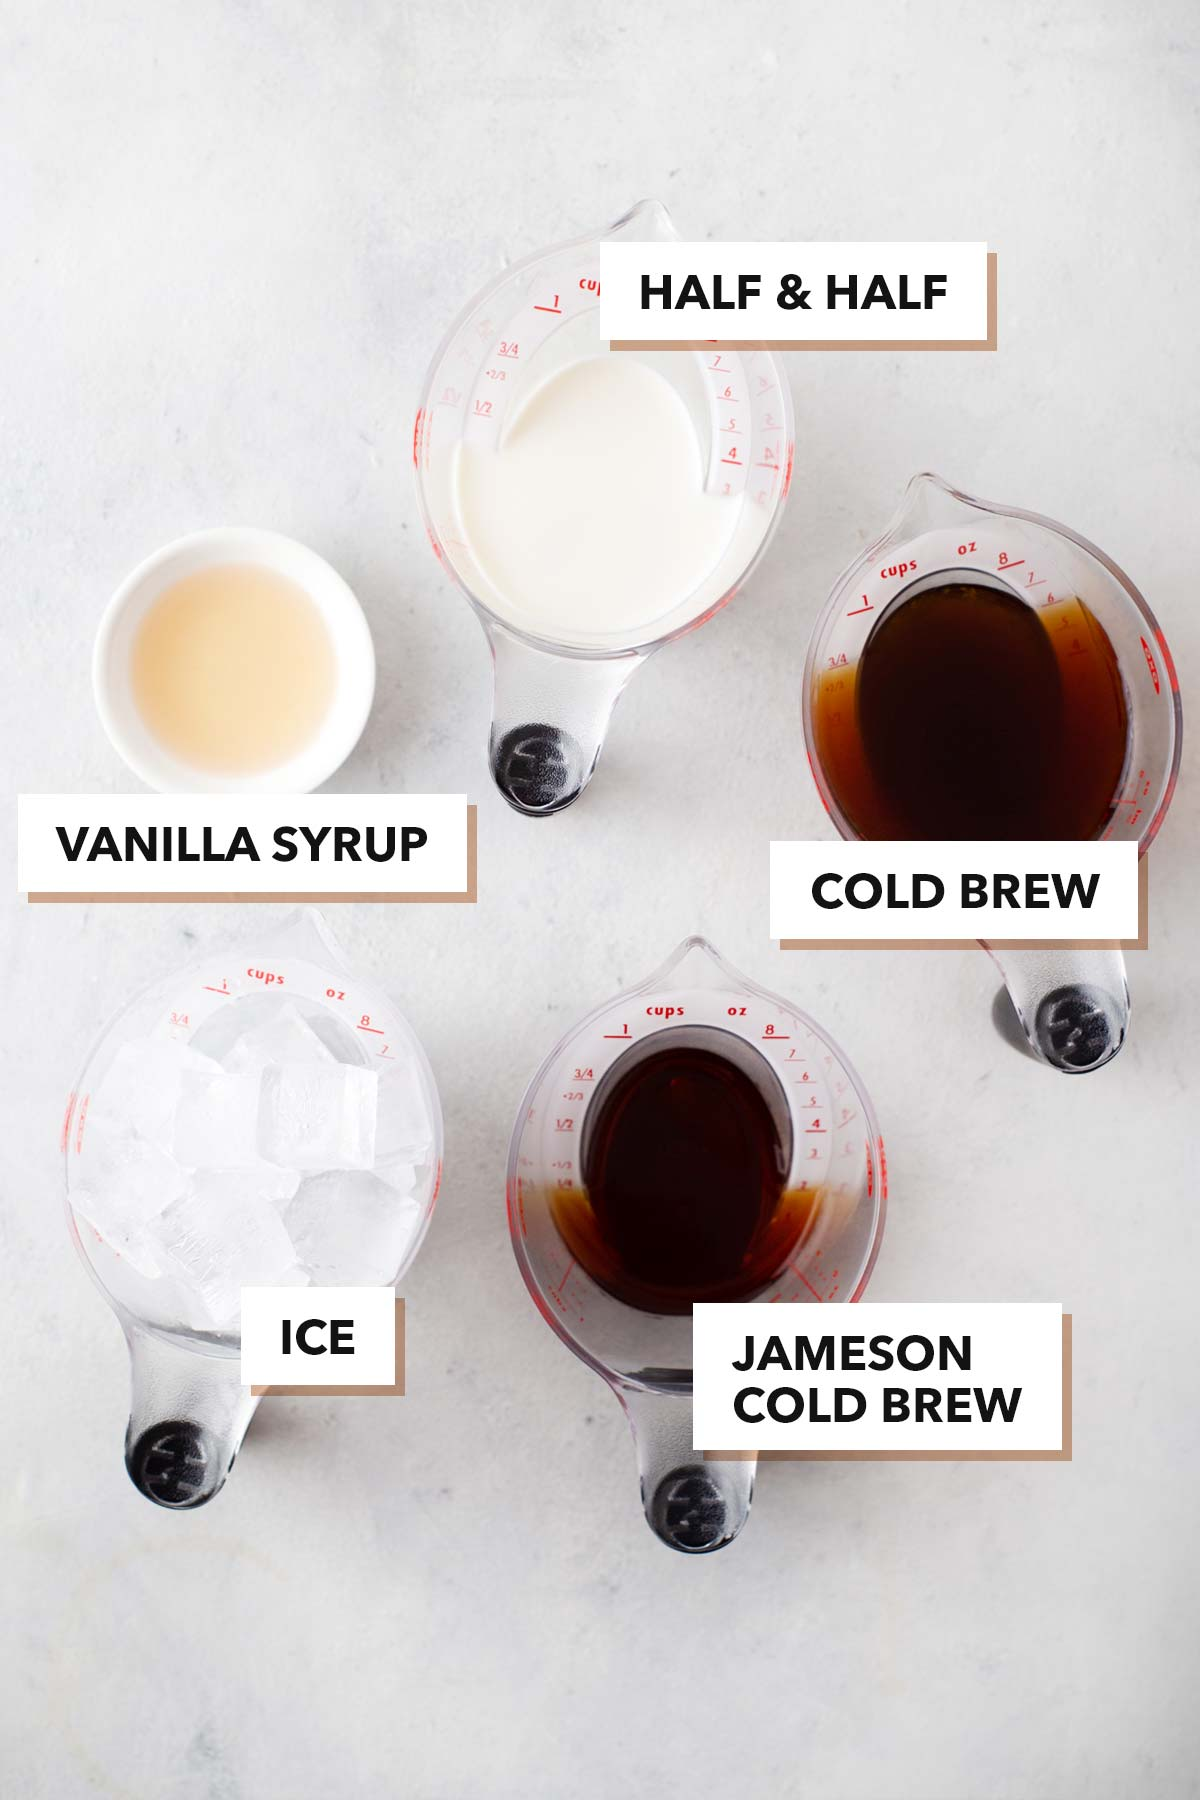 Jameson Cold Brew with cold foam ingredients.